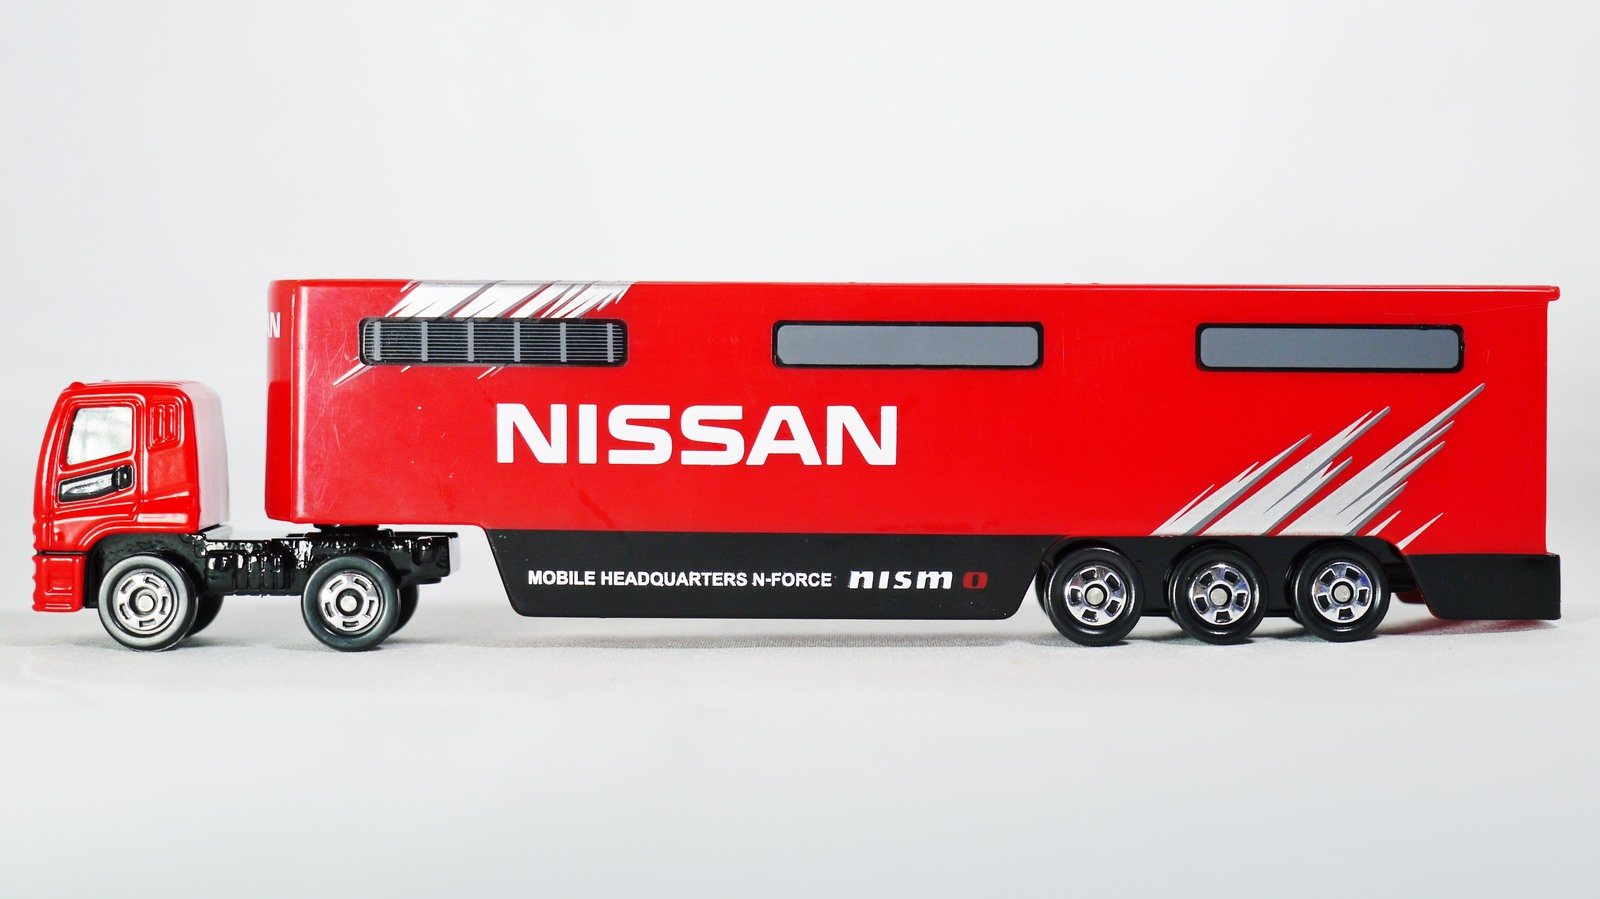 Takara Tomy Tomica Toys Rus Exclusive Nissan And 50 Similar Items Diecast Truck No77 Hino Profia Original Toysrus Nismo Mobile Headquarters N Force